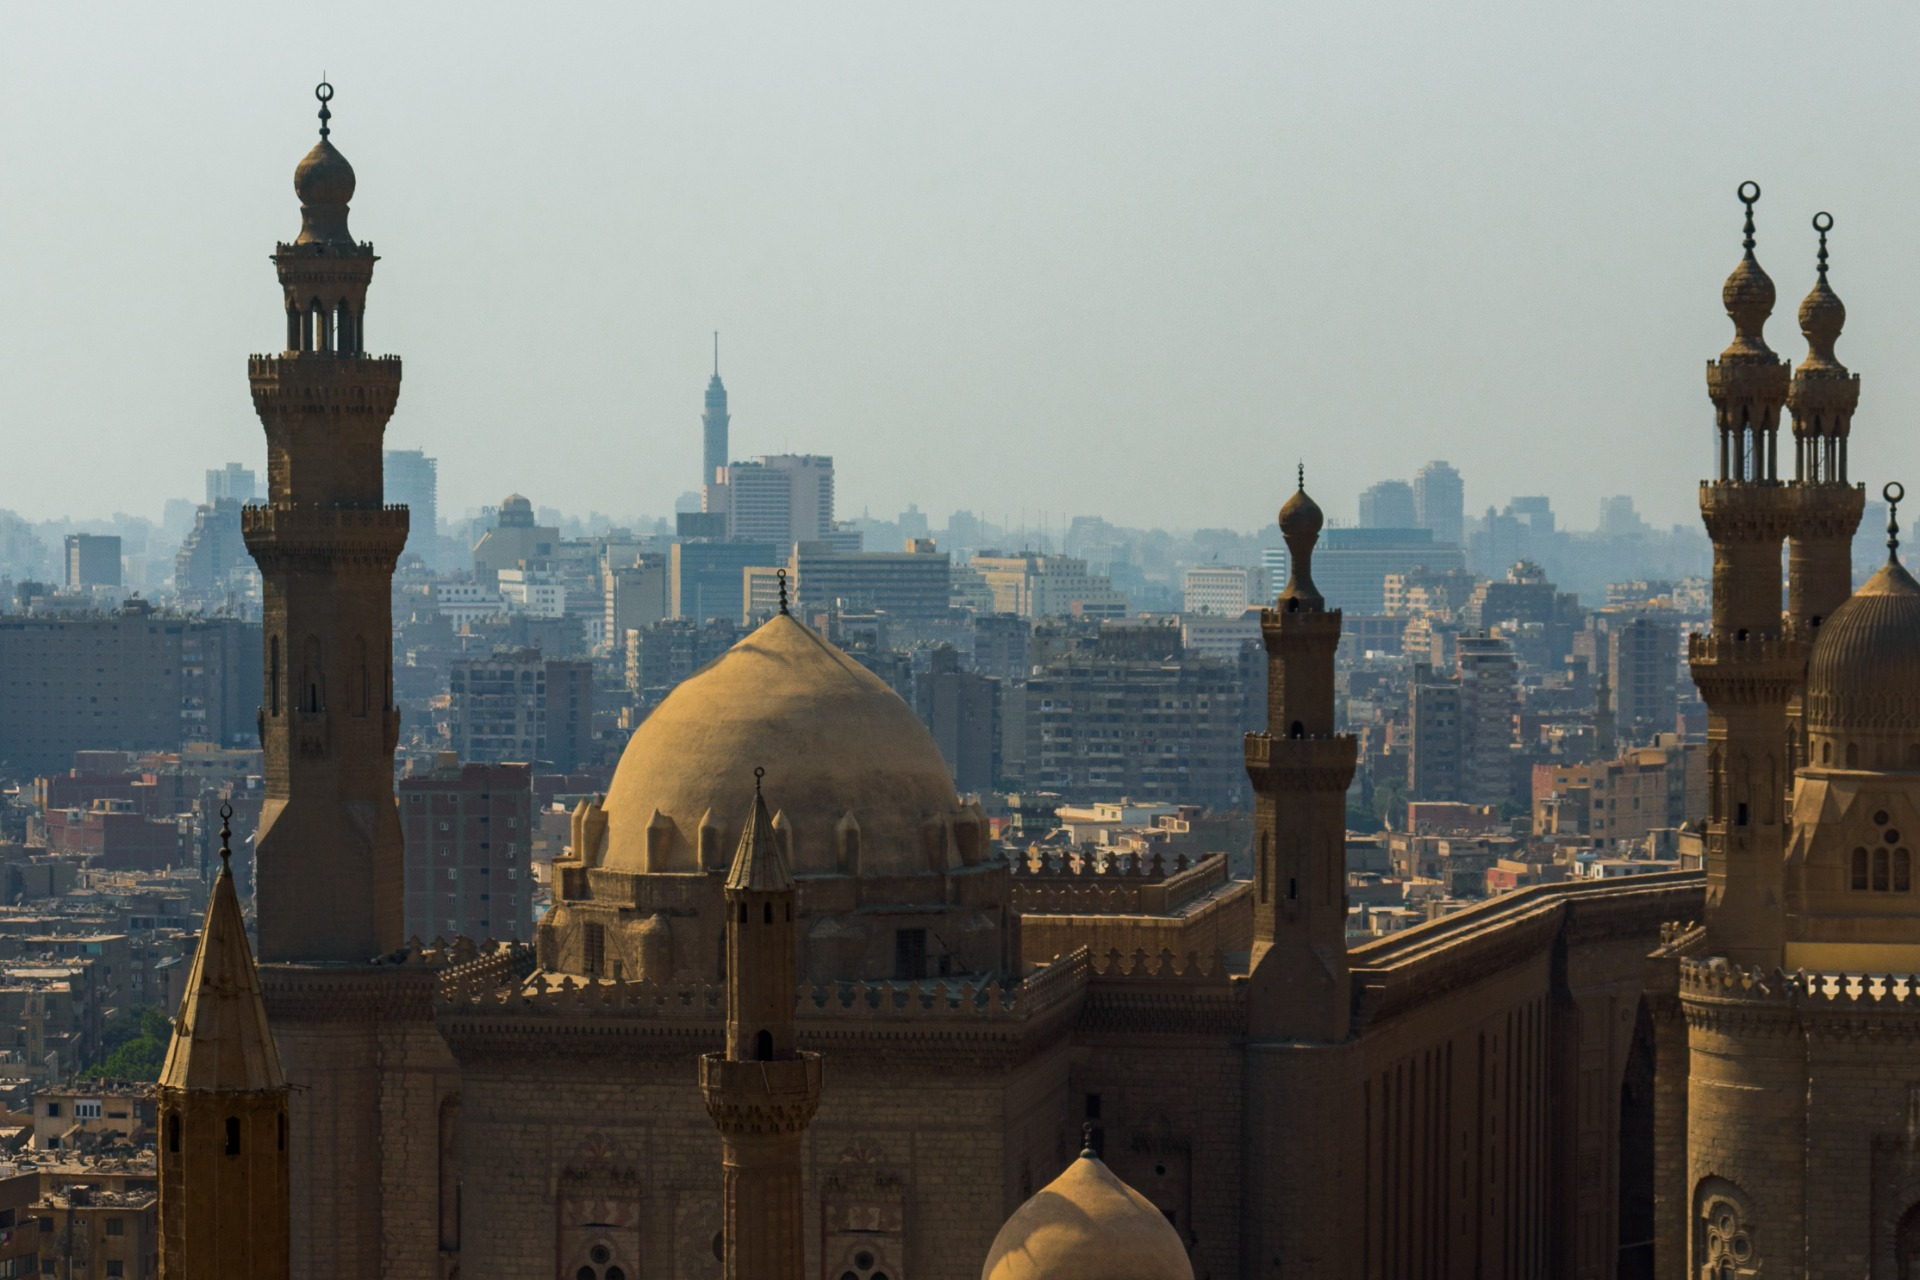 Buildings in Cairo Egypt